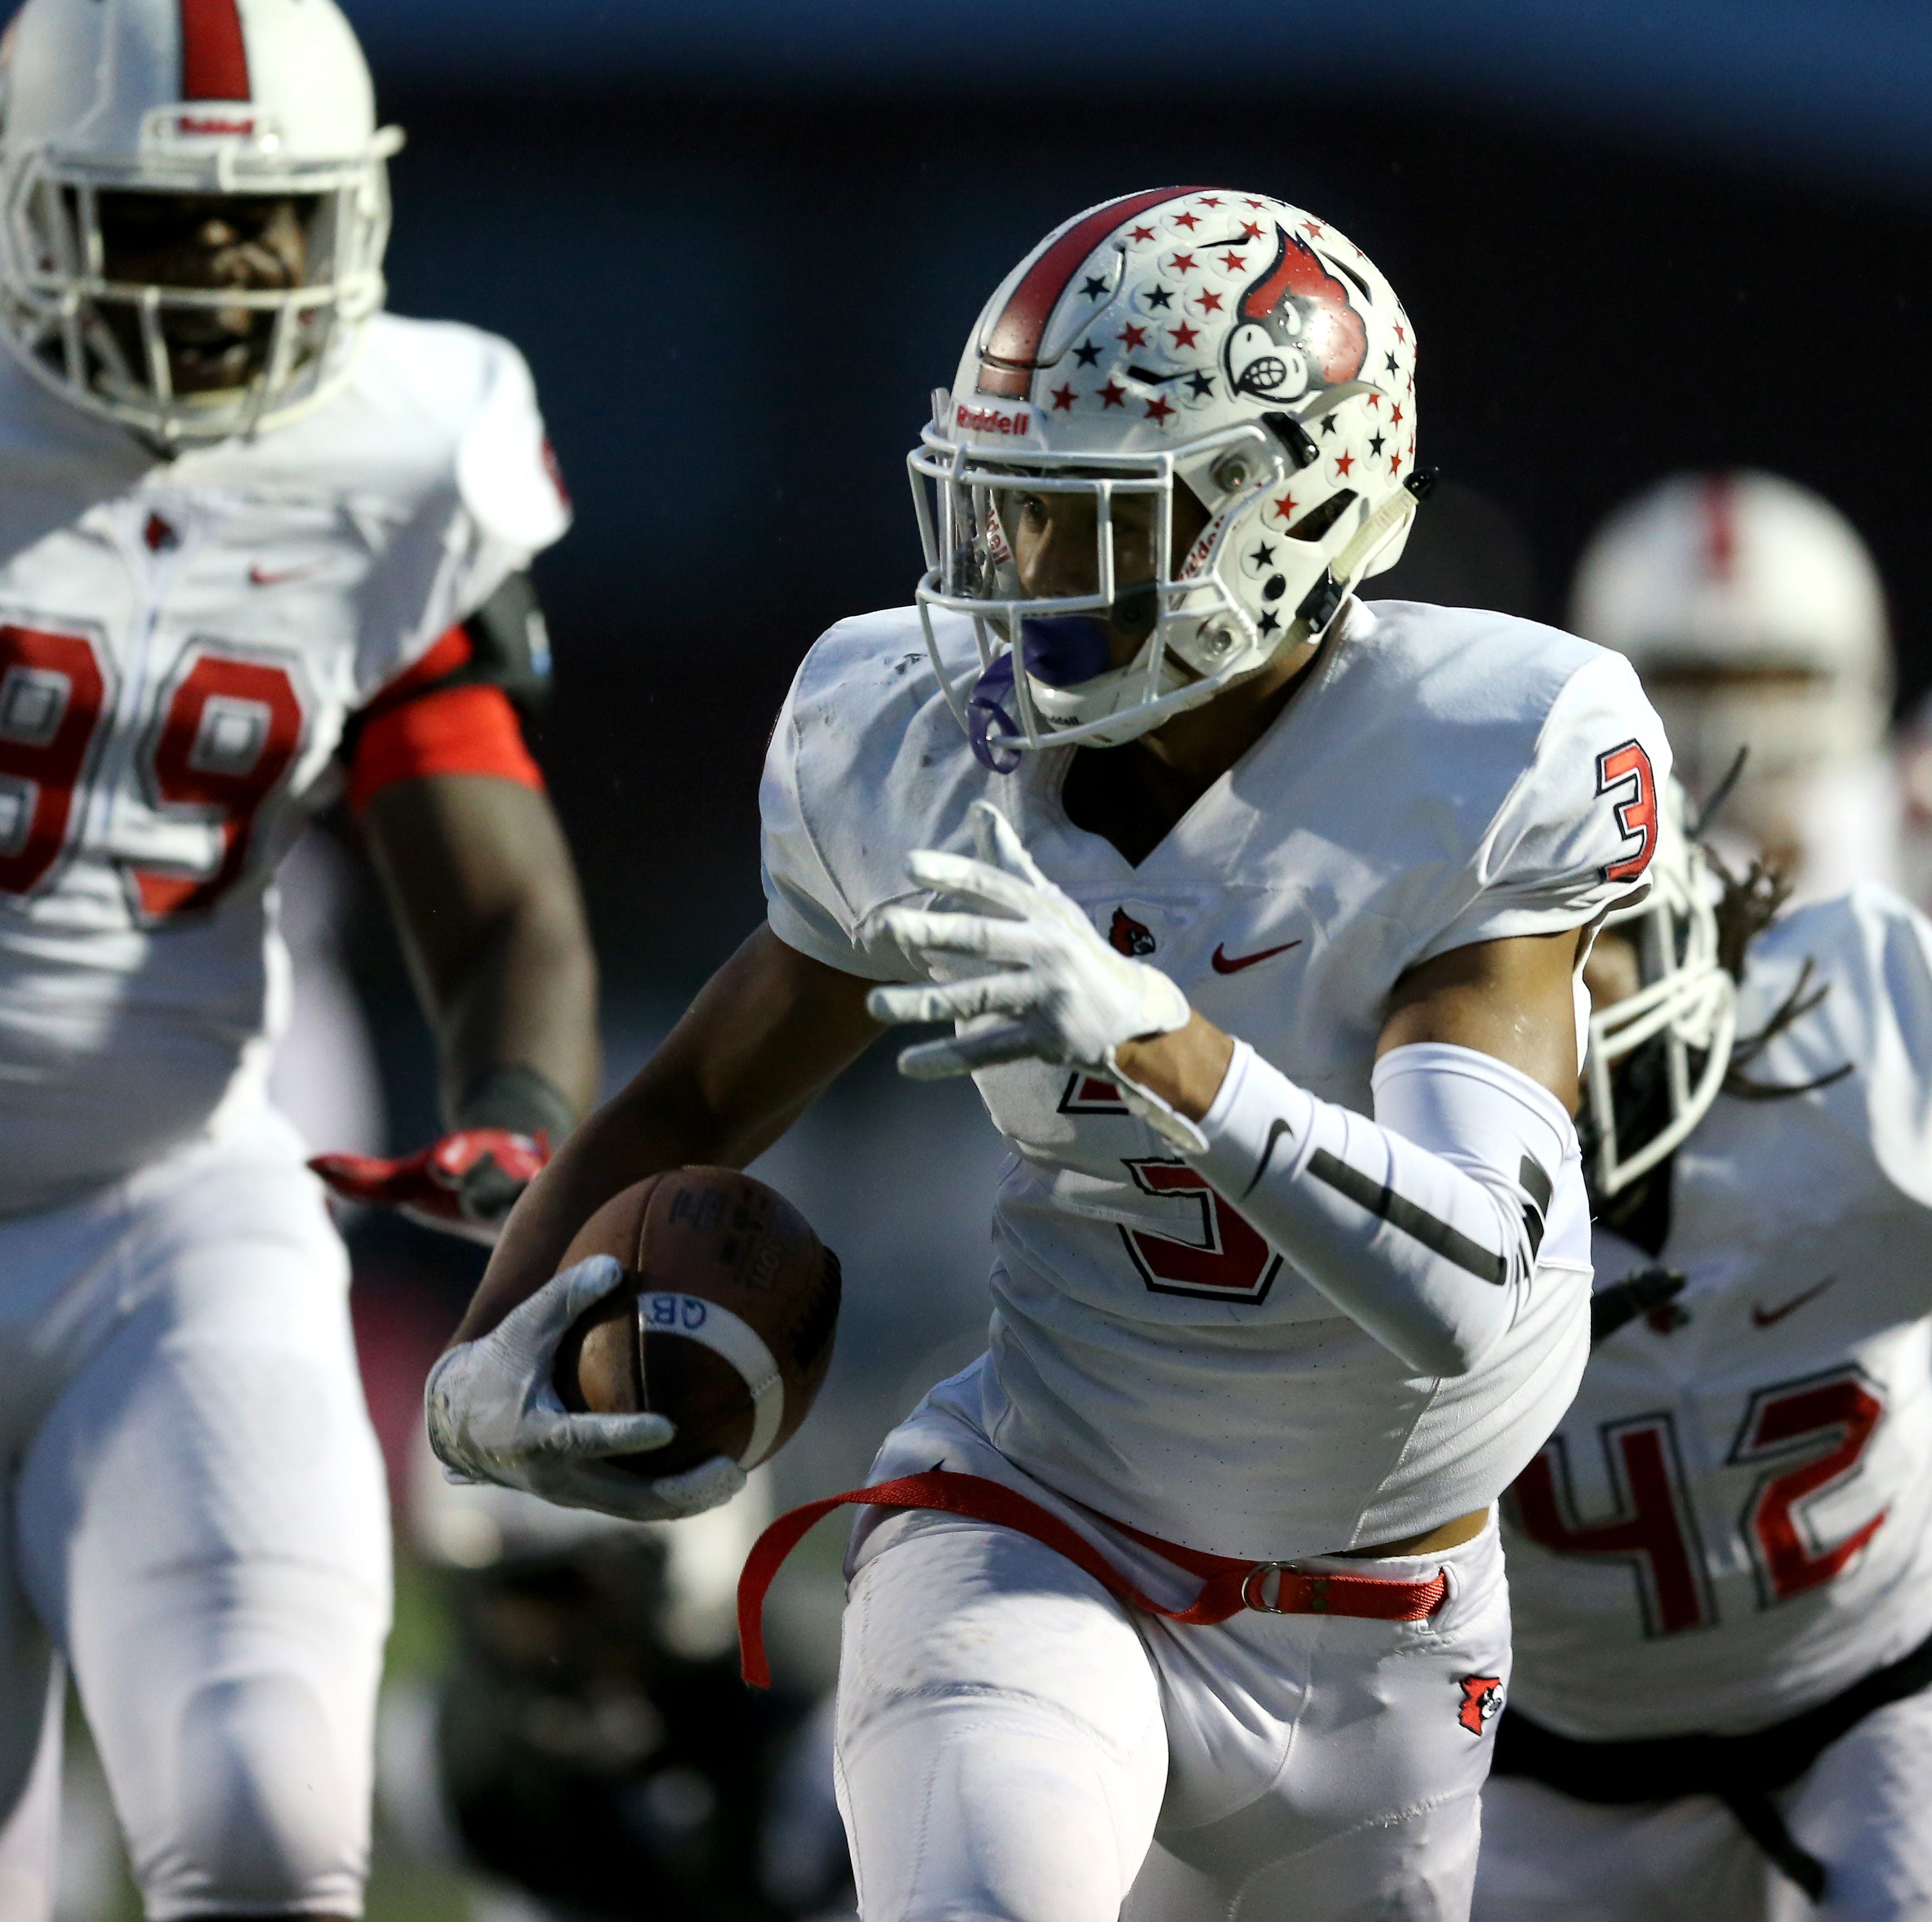 Colerain Cardinals defensive back Deshawn Pace (3) returns a fumble for a touchdown in the first quarter during a high school football game between the Colerain Cardinals and the Lakota East Thunderhawks, Friday, Oct. 12, 2018, at Lakota East High School in Liberty Township, Ohio.